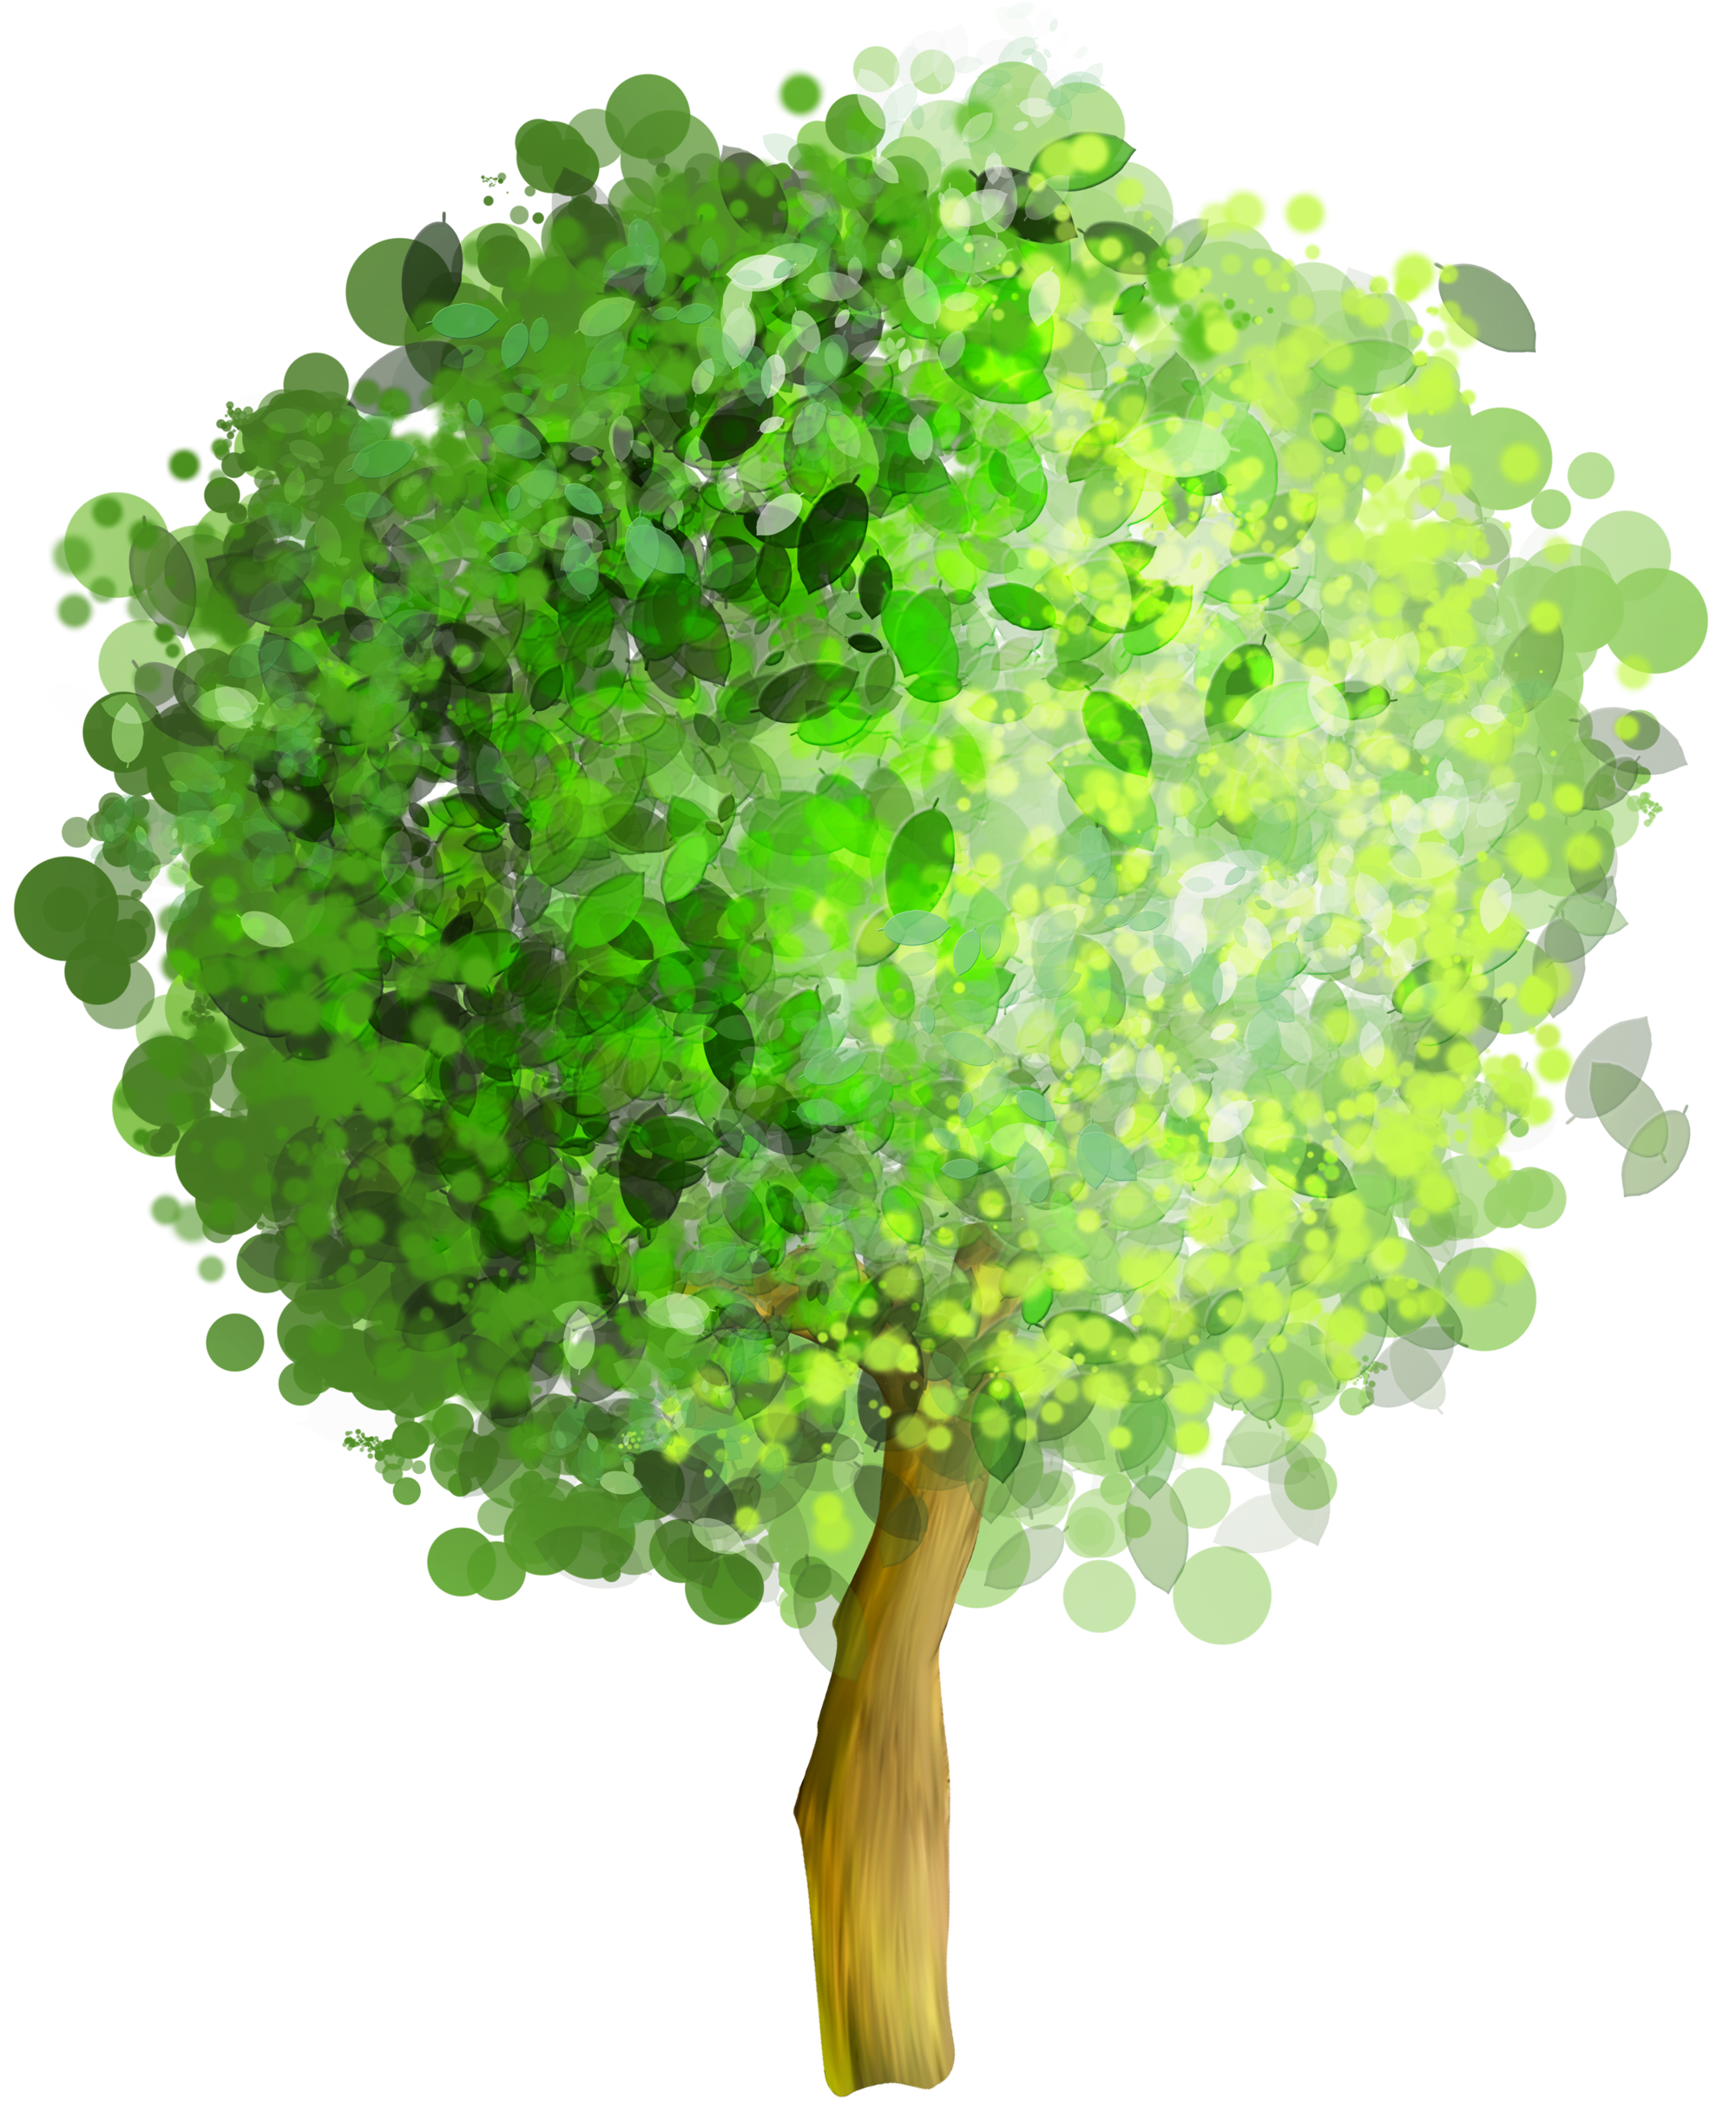 Green art png gallery. Tree clipart watercolor